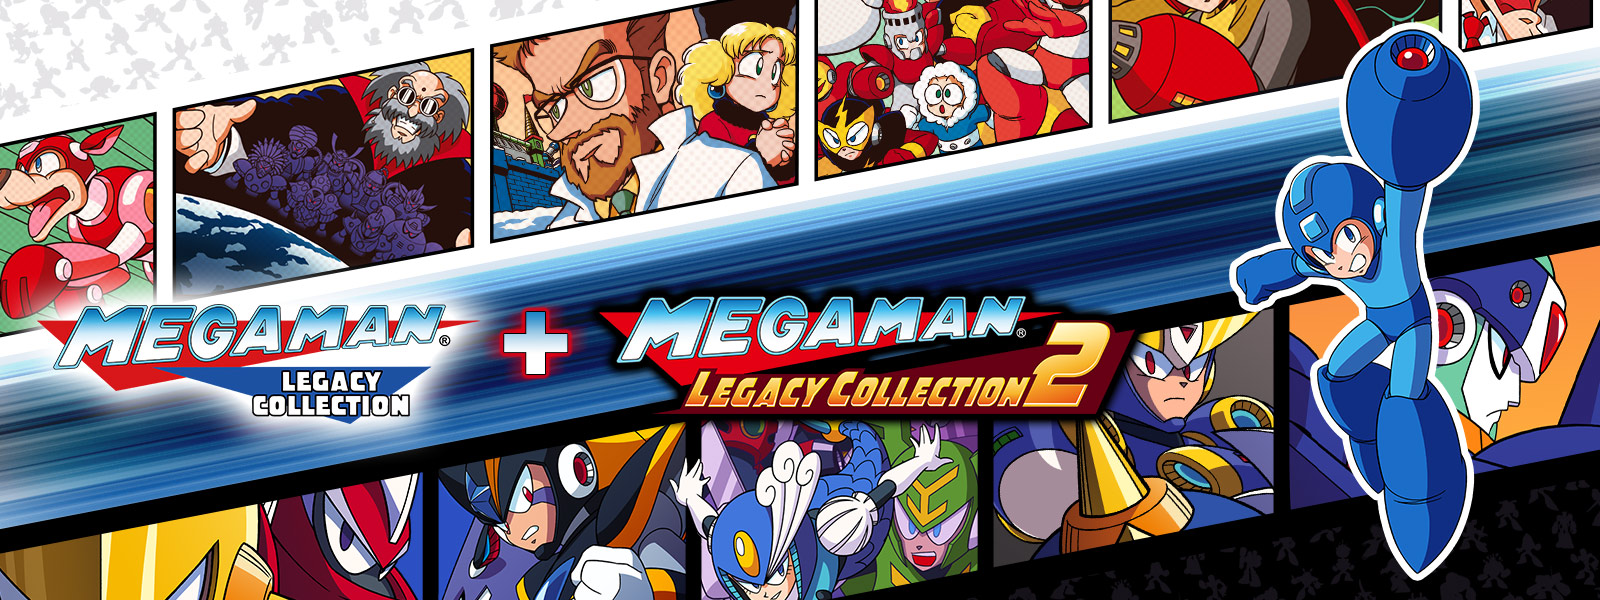 Mega Man Legacy Collection + Mega Man Legacy Collection 2, Mega Man sostiene su destructor sobre un fondo de collage de varios personajes de Mega Man en una tira de película